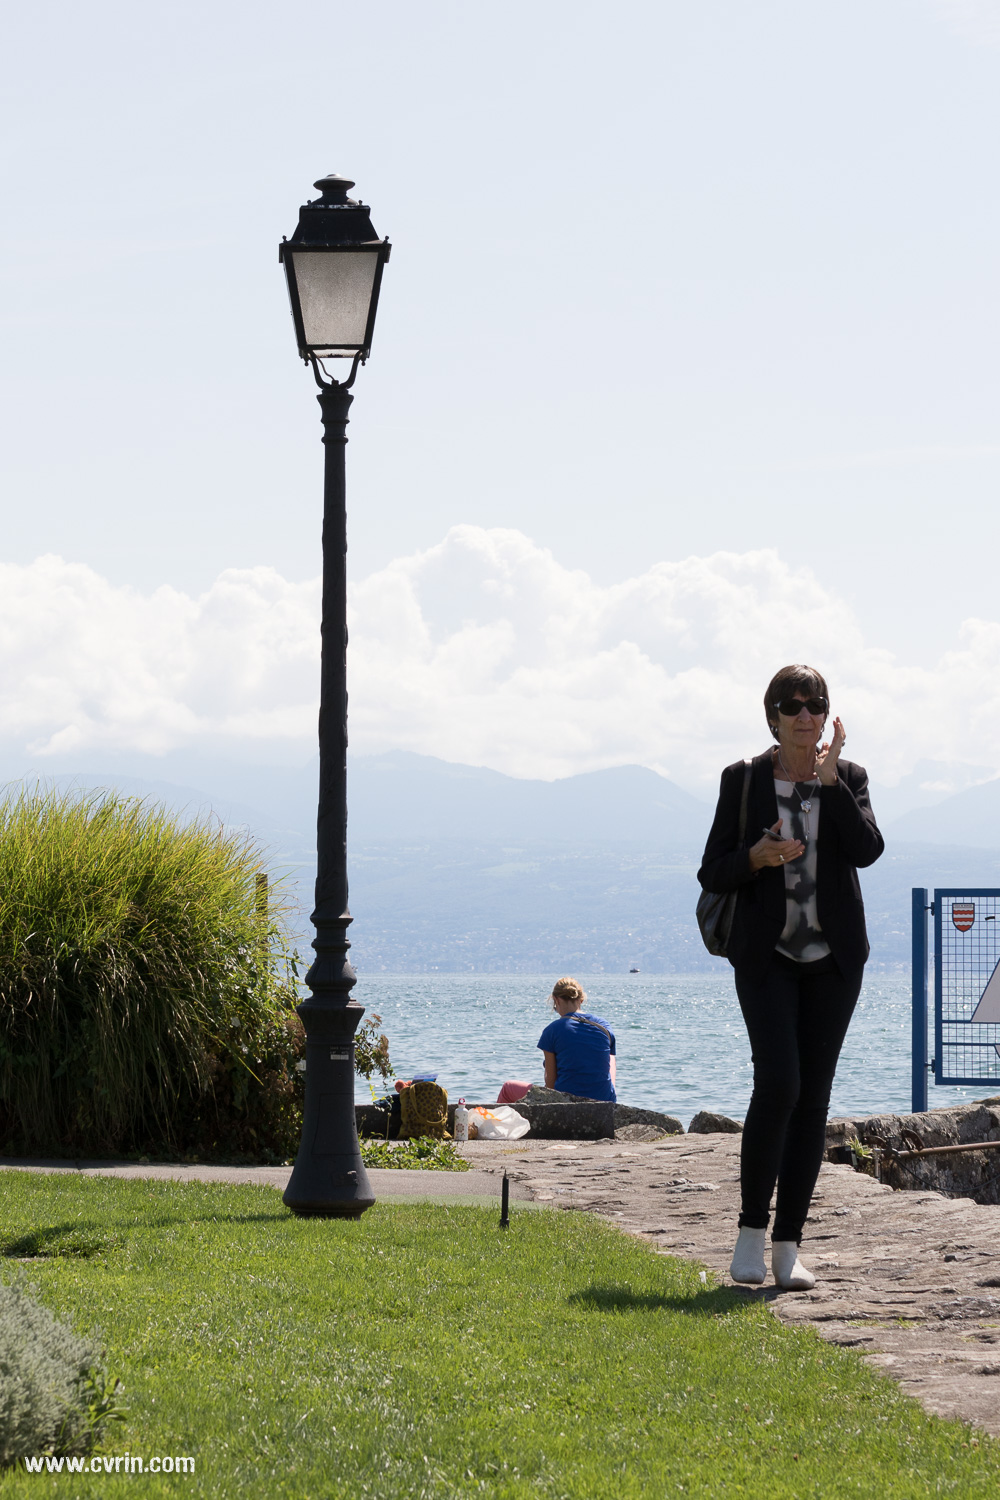 LivreQuais_Morges_030917_7775SQ.jpg